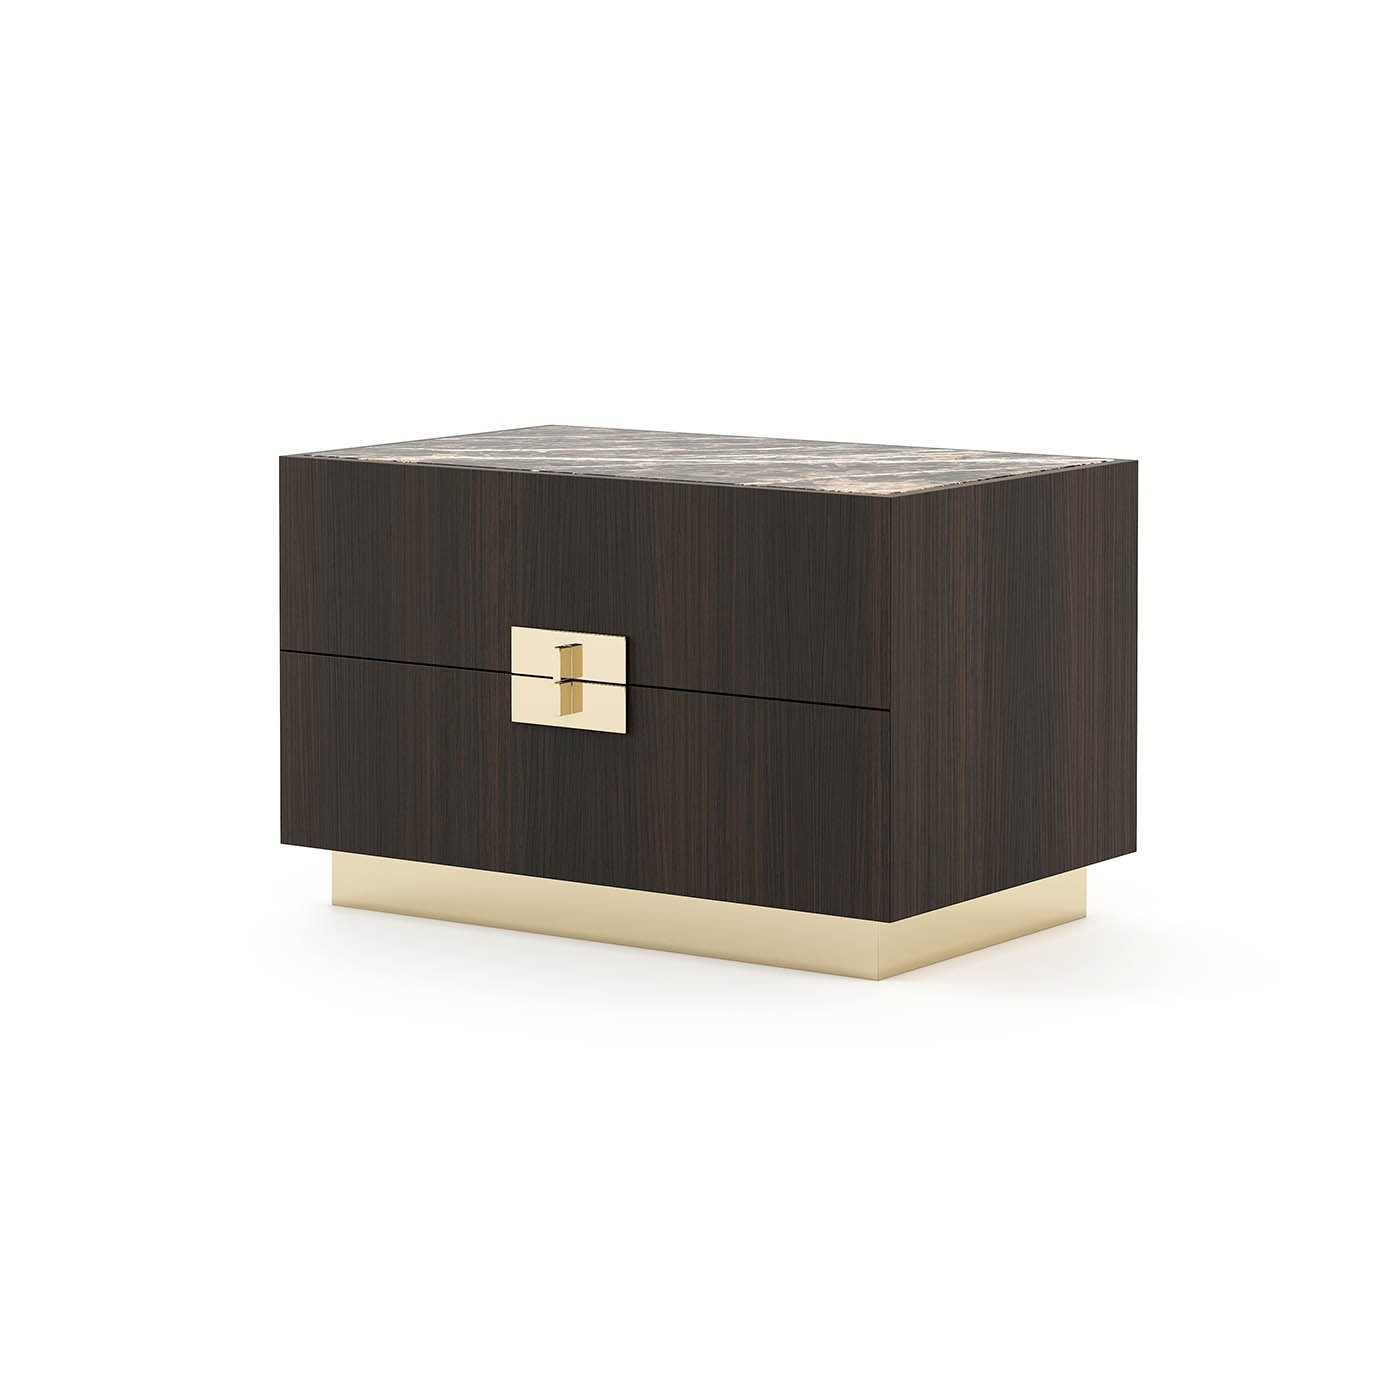 Lady Bedside Table